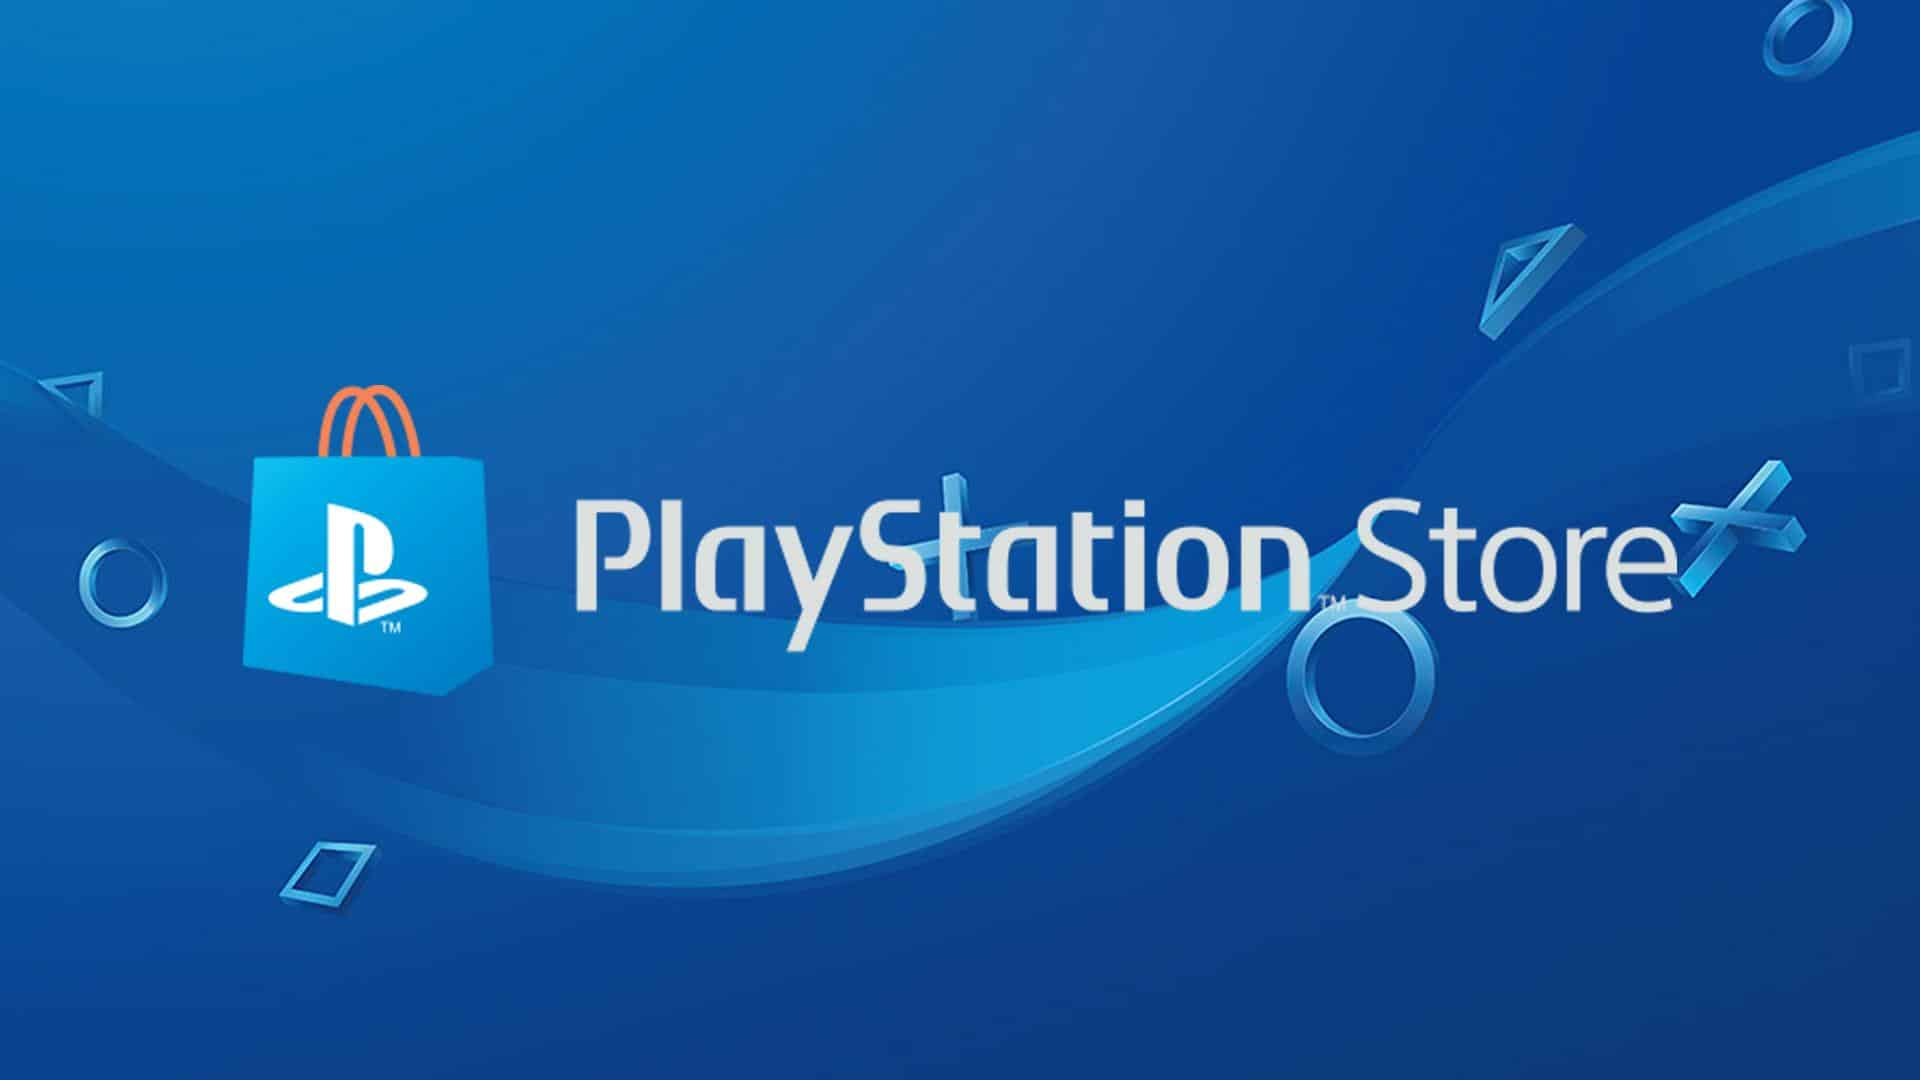 Arriva la wishlist nello store di playstation5